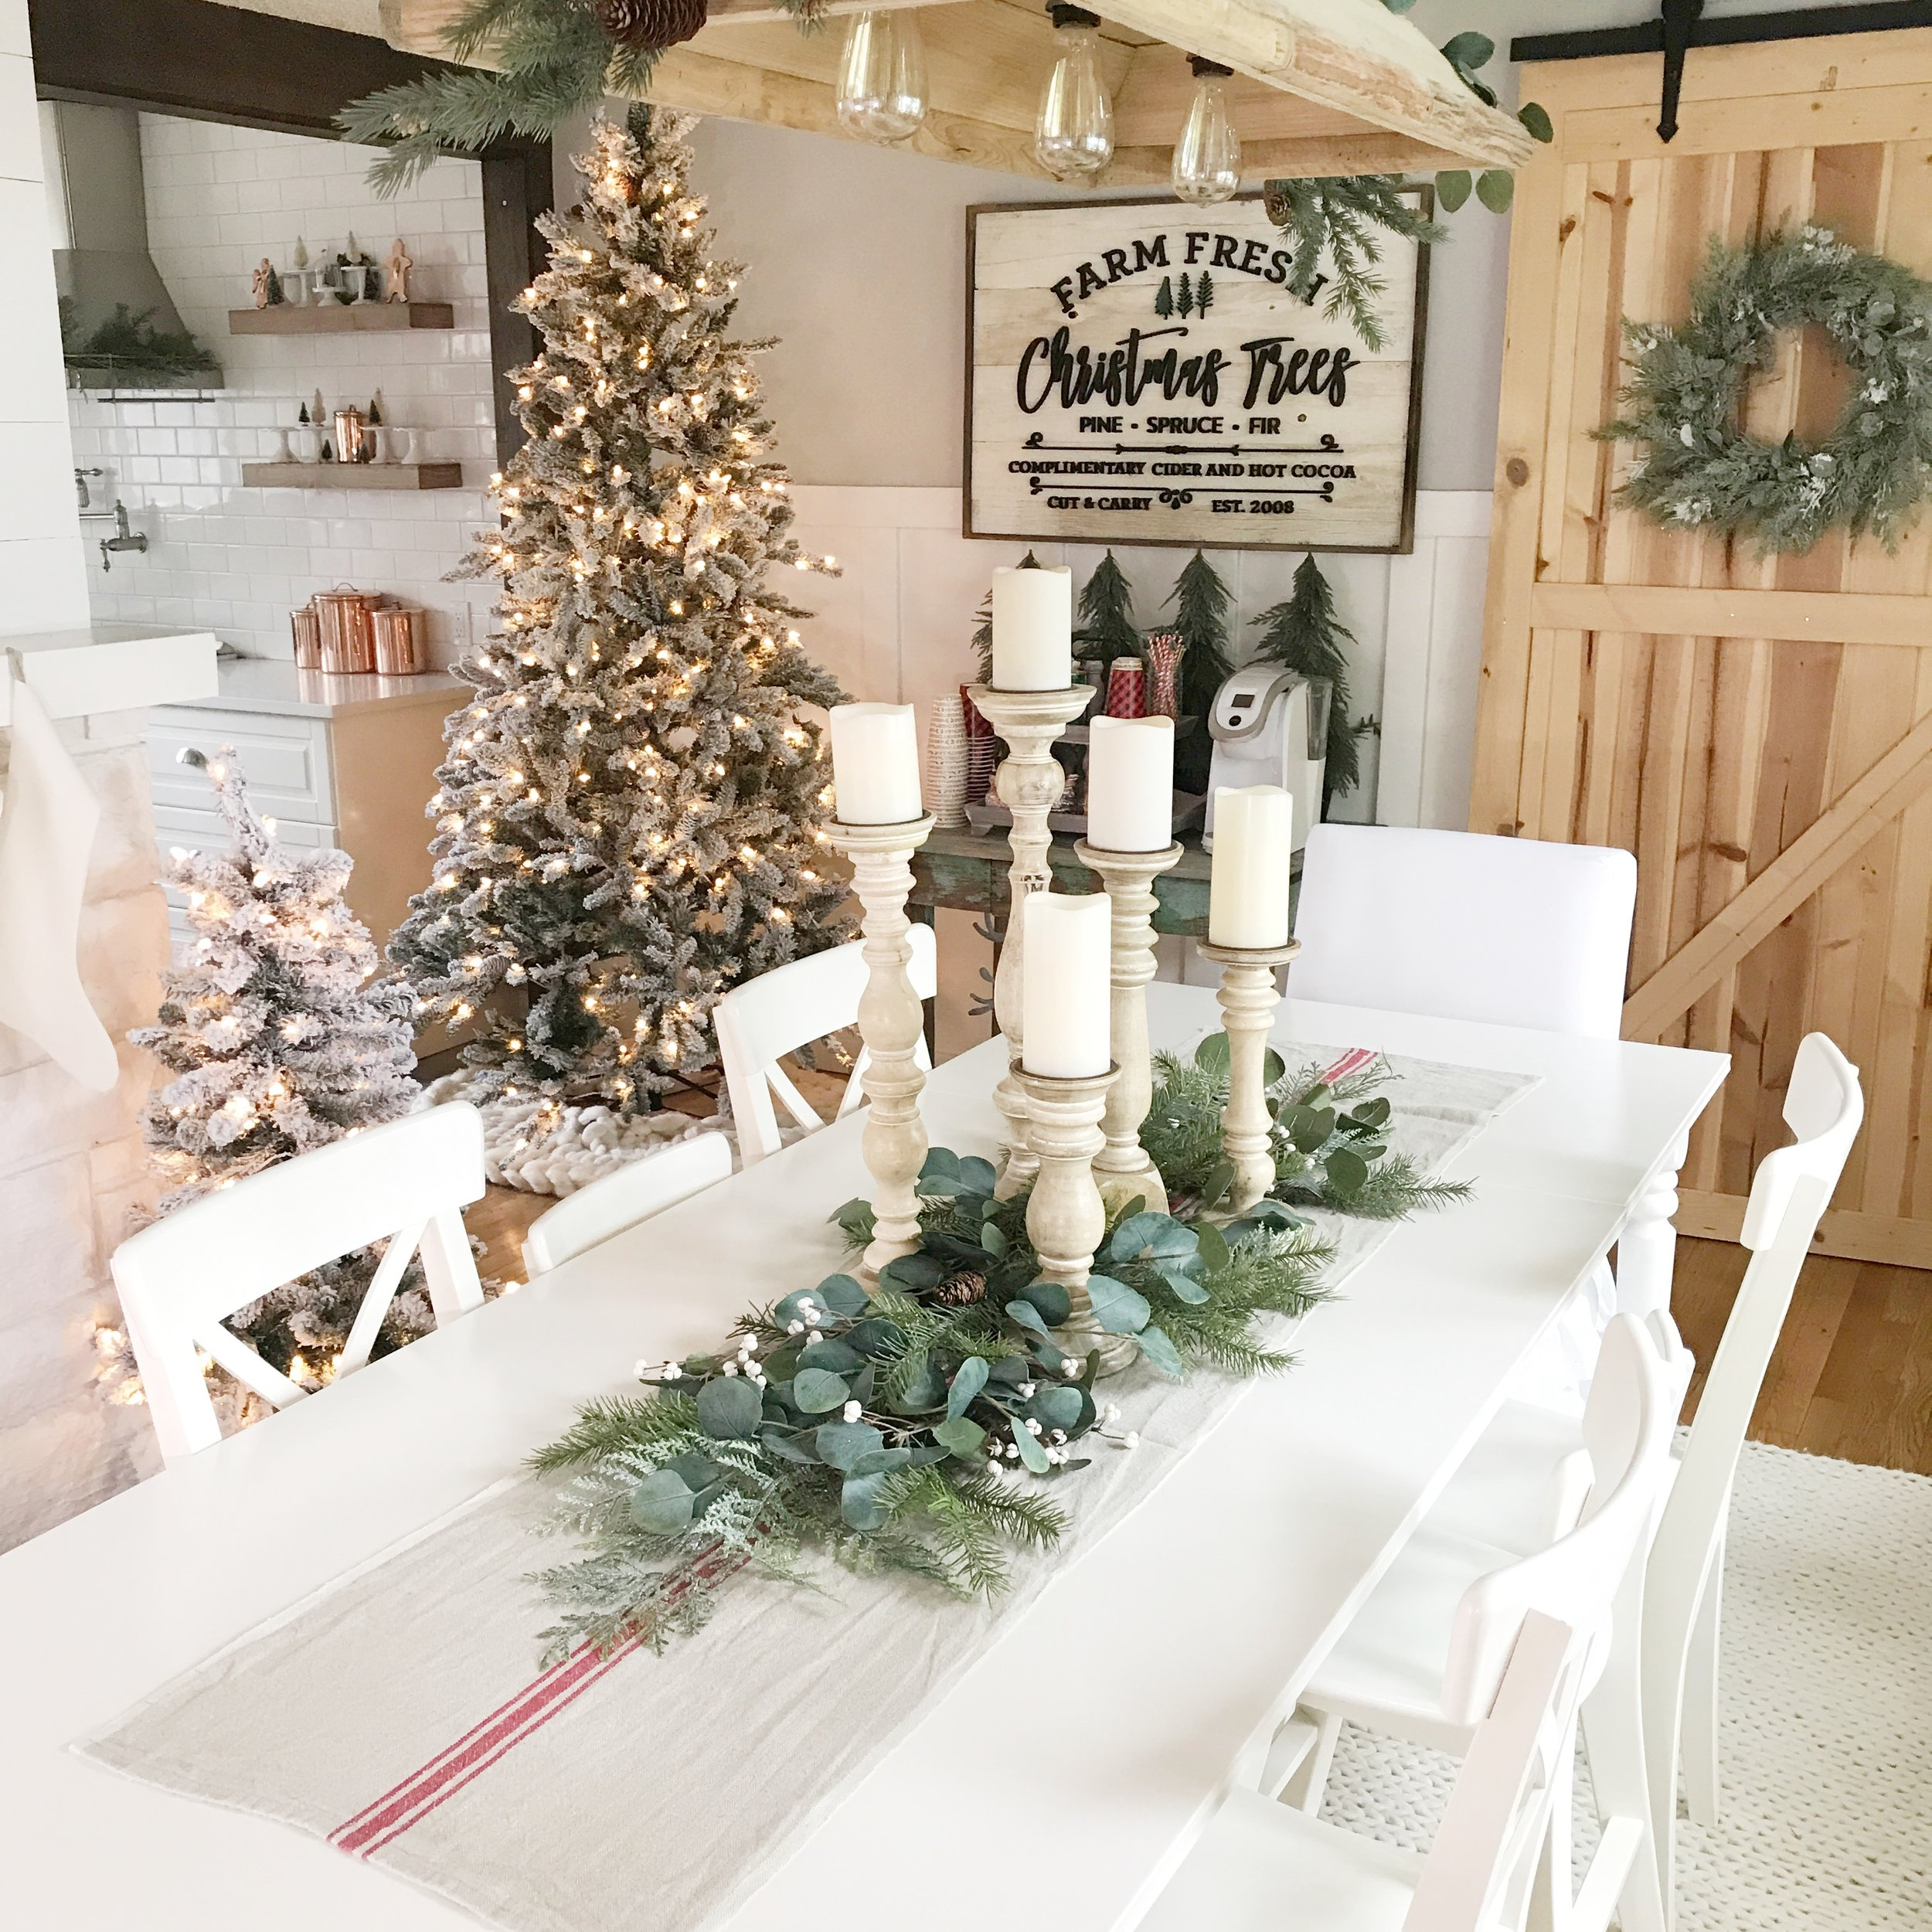 Chandelier  :  Antique Farmhouse   Christmas Tree Sign  :  Harper Grayce   Wreath  :  Walnut Harbor